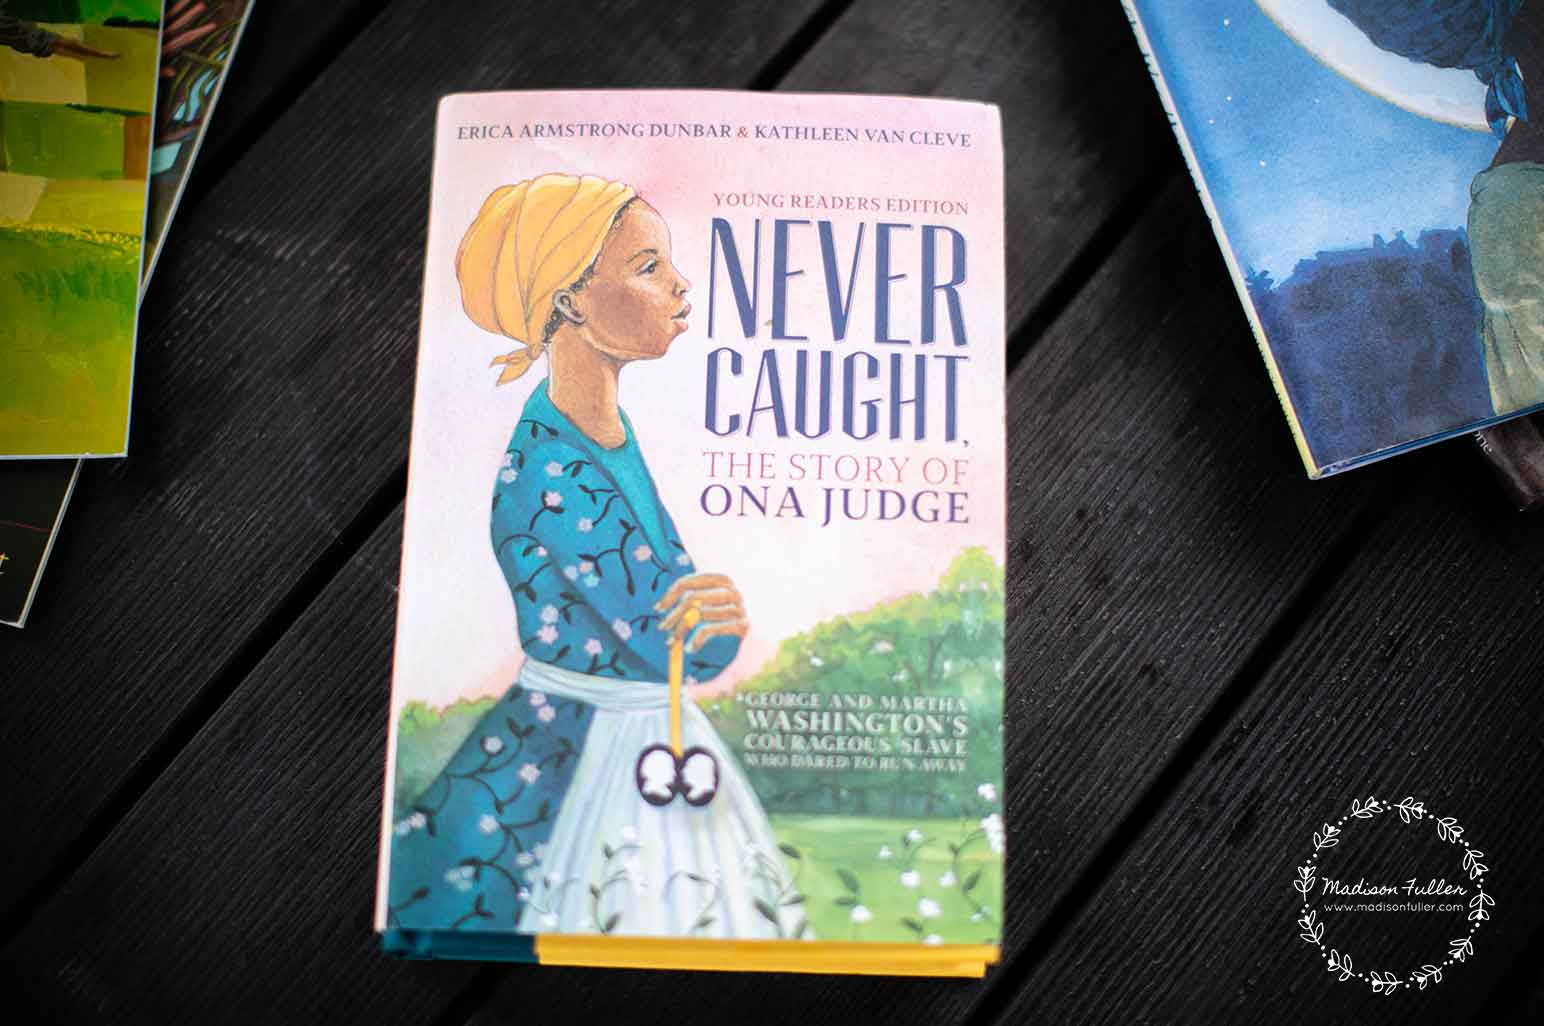 Juneteenth Books for Kids - Never Caught, the Story of Ona Judge: George and Martha Washington's Courageous Slave Who Dared to Run Away